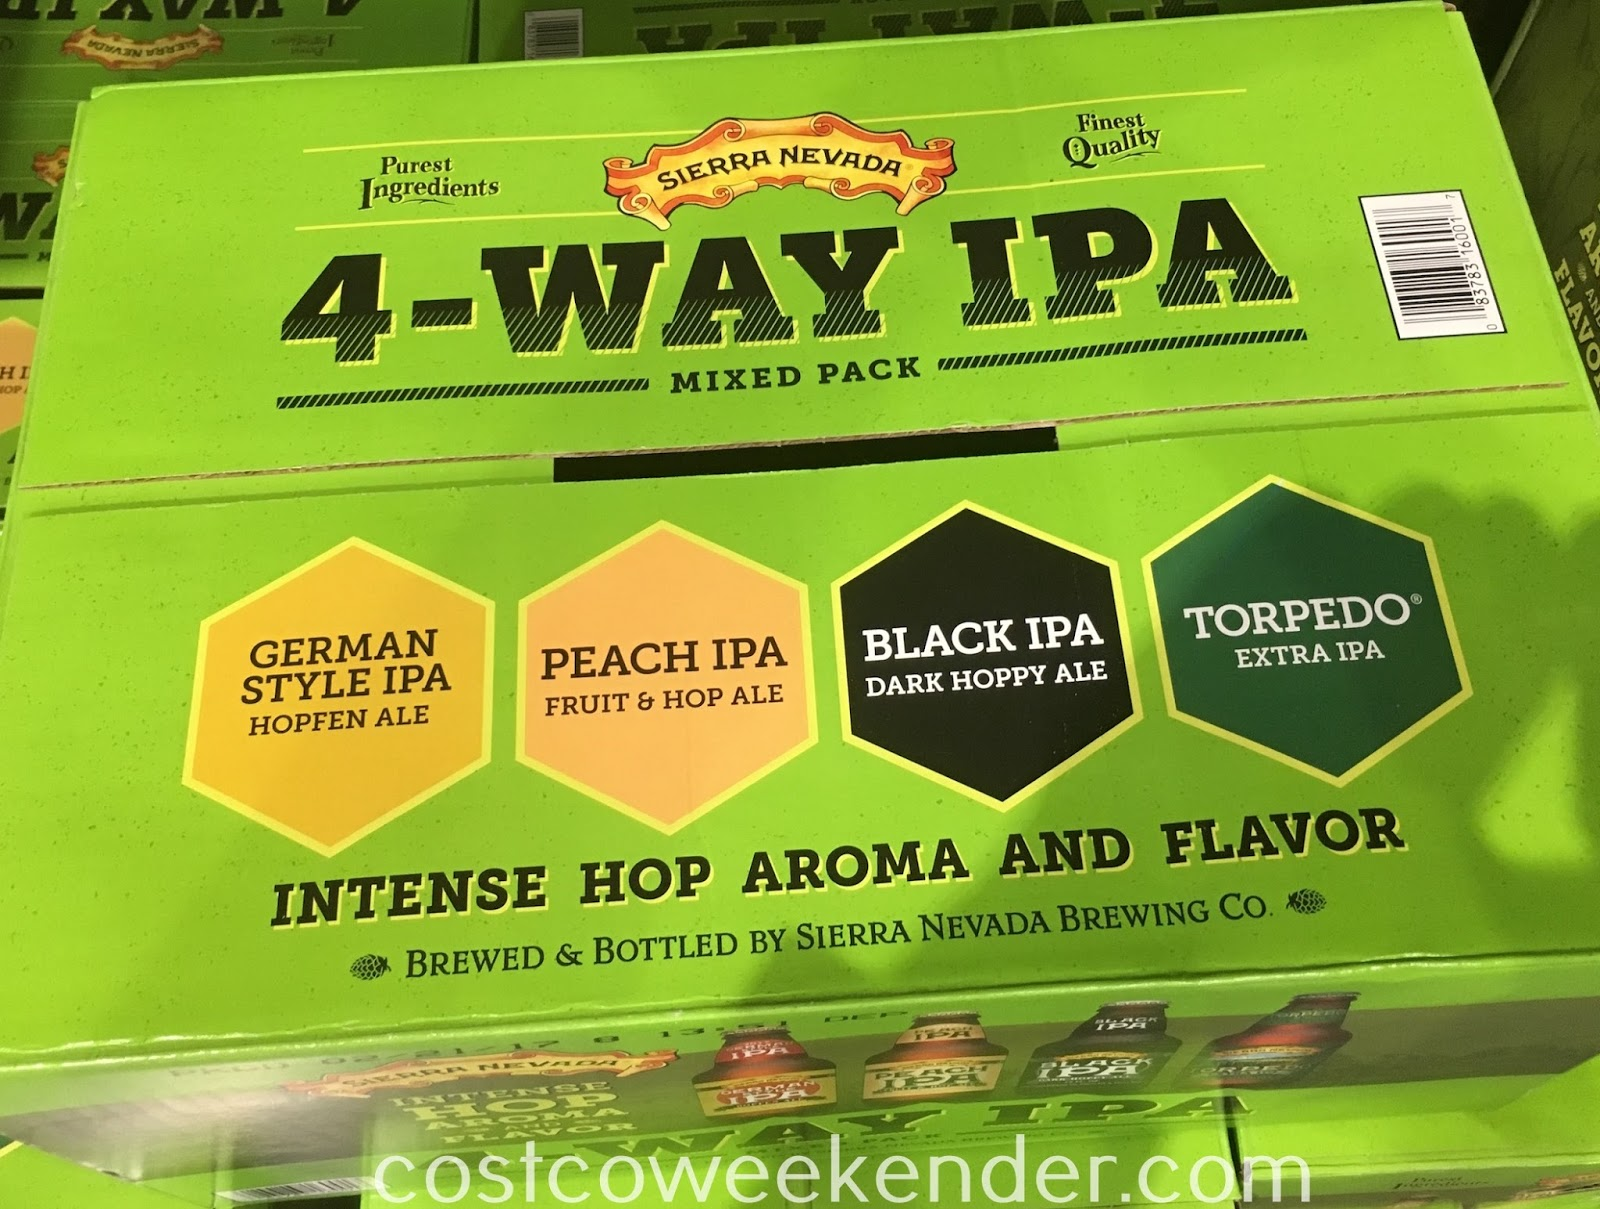 Costco 857071 - Sierra Nevada 4-way IPA Mixed Pack - For special occassions or just when you feel like having a cold one